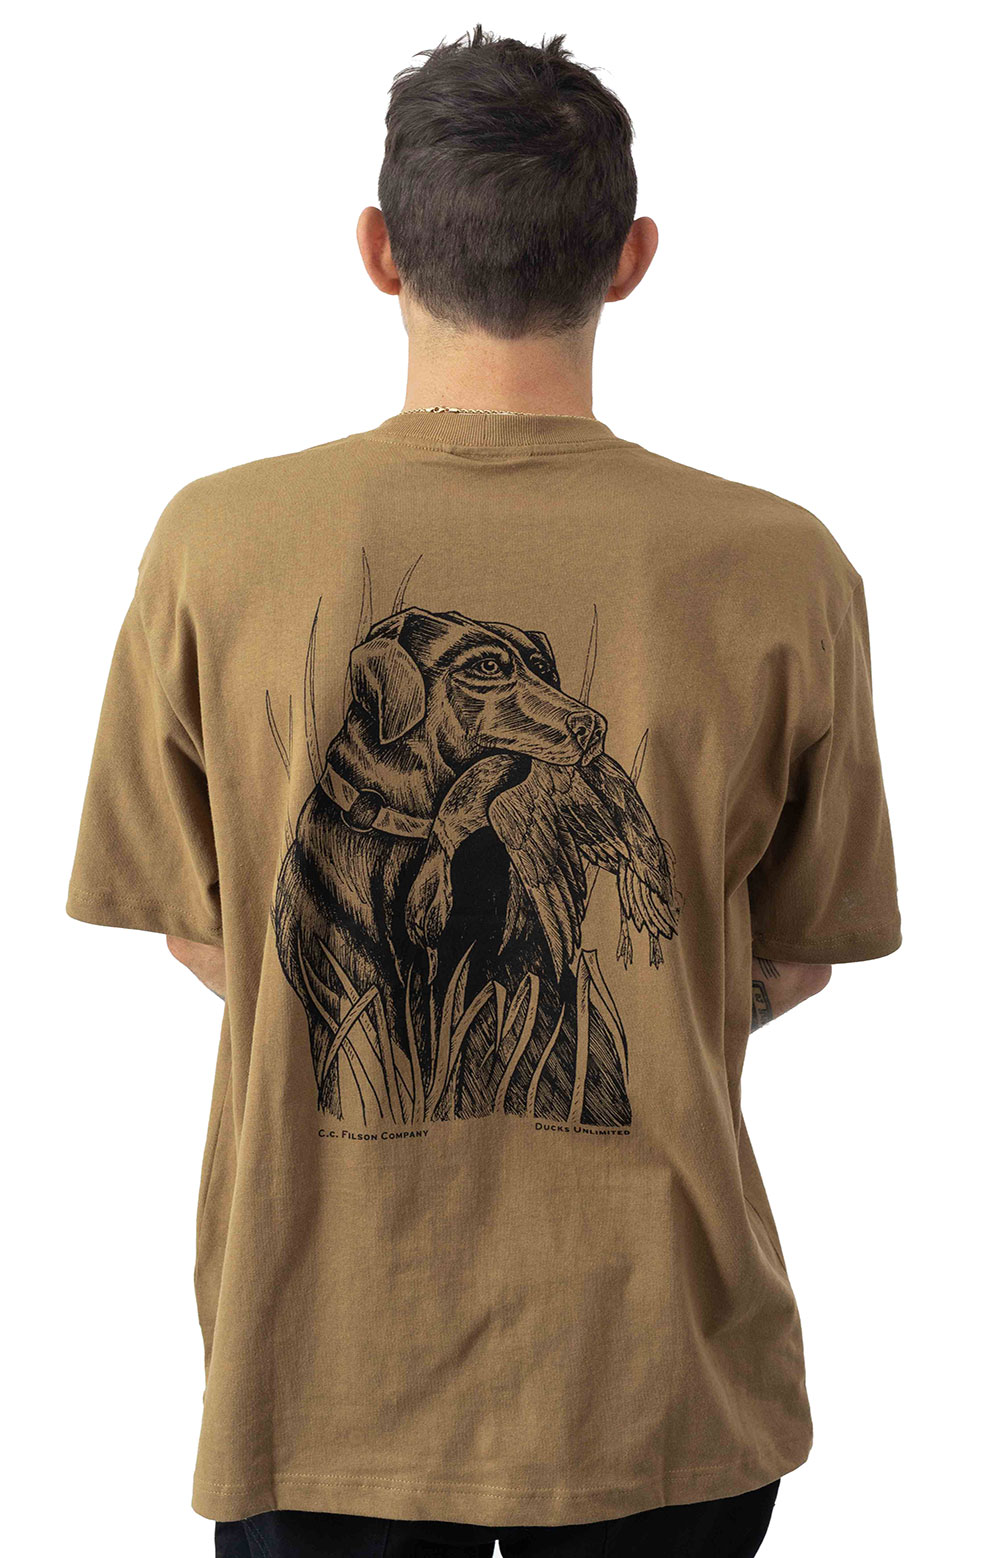 S/S Outfitter Graphic T-Shirt - Rugged Tan